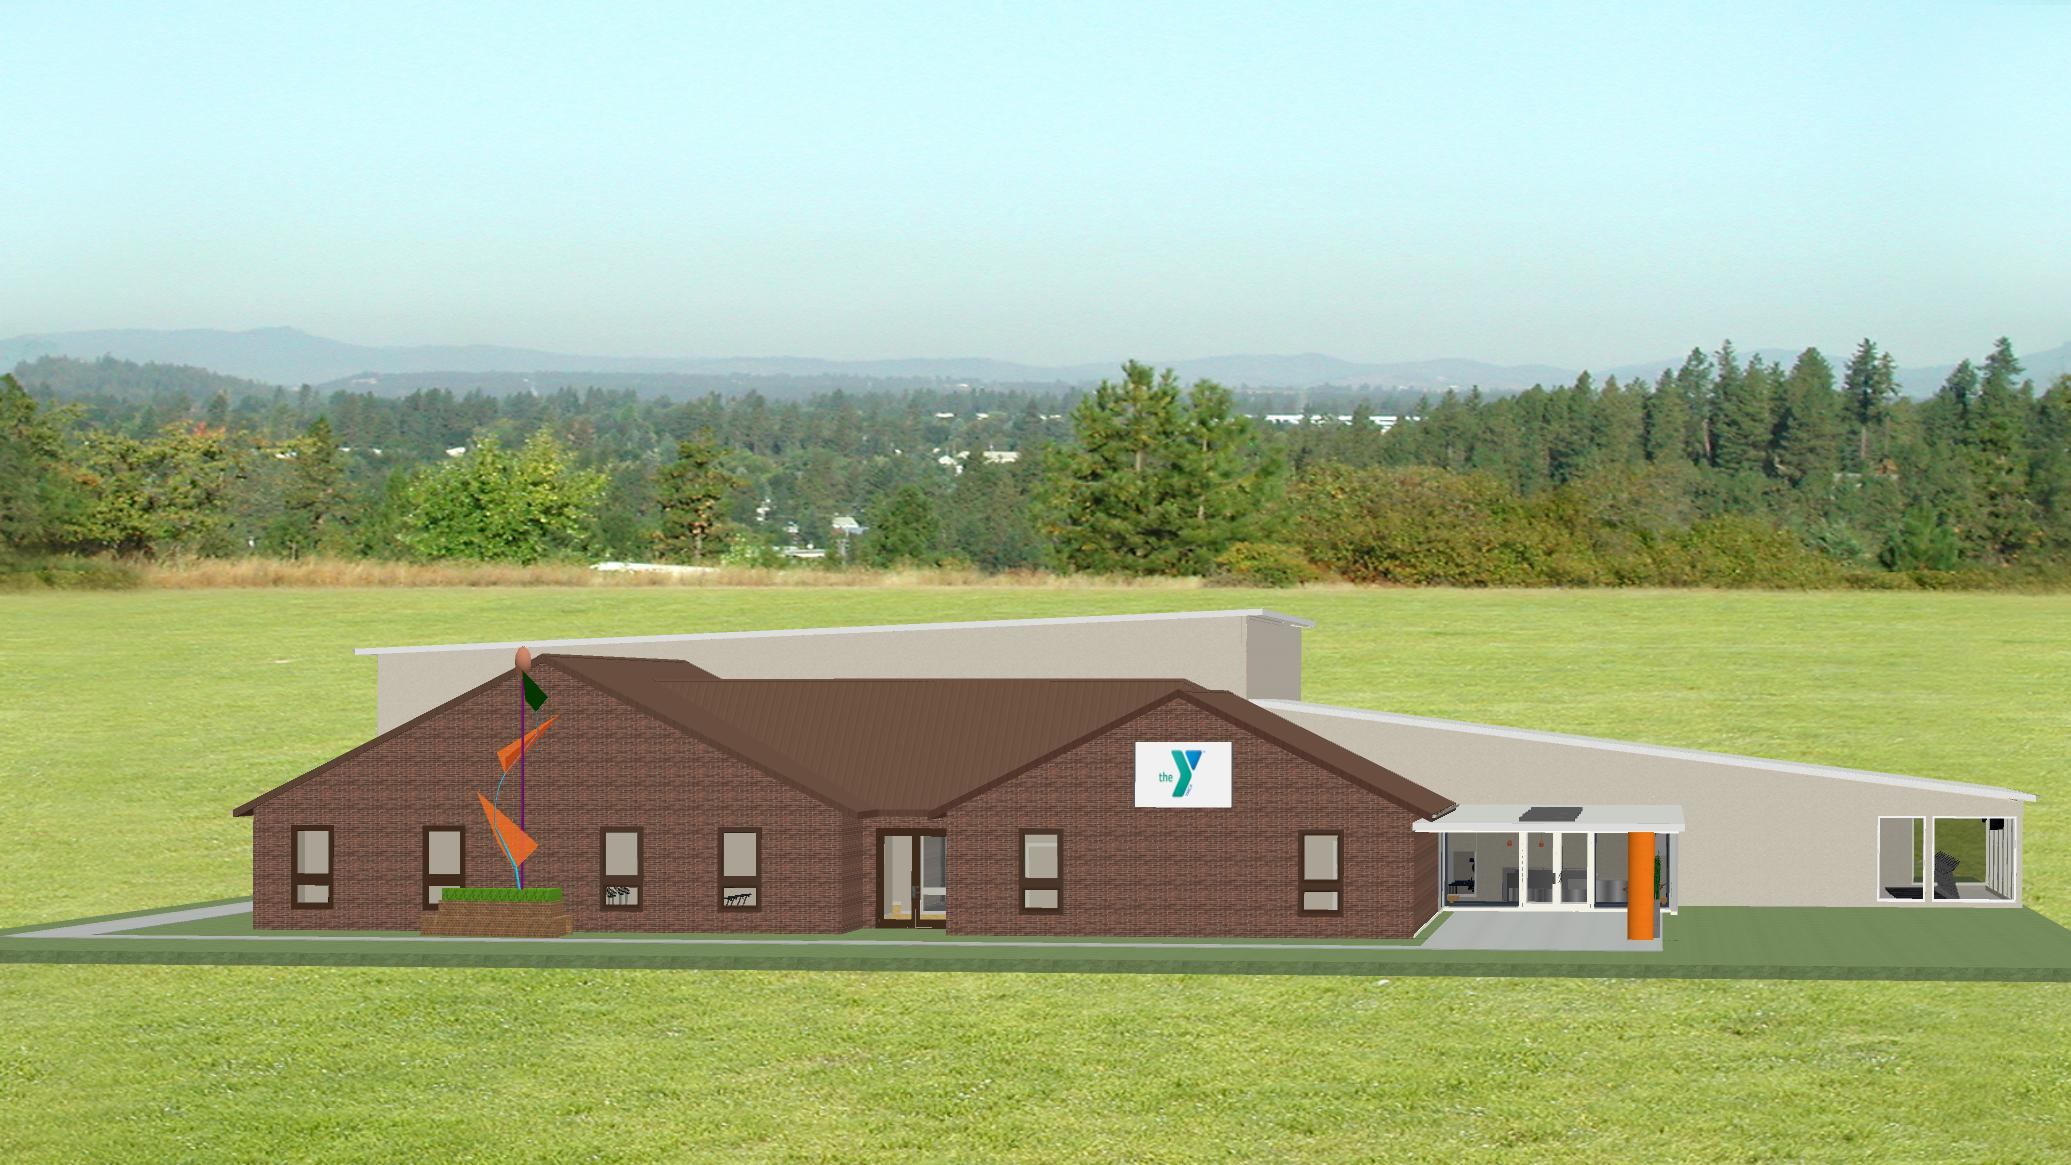 """Middlesex YMCA Breaks Ground   Record   """"We are thrilled!"""" said branch executive Rosabeth Ward Kissman. """"This big dream, vetted and reviewed by many classes of our board of management over the past 10 years has come to life.""""  Read More   »"""